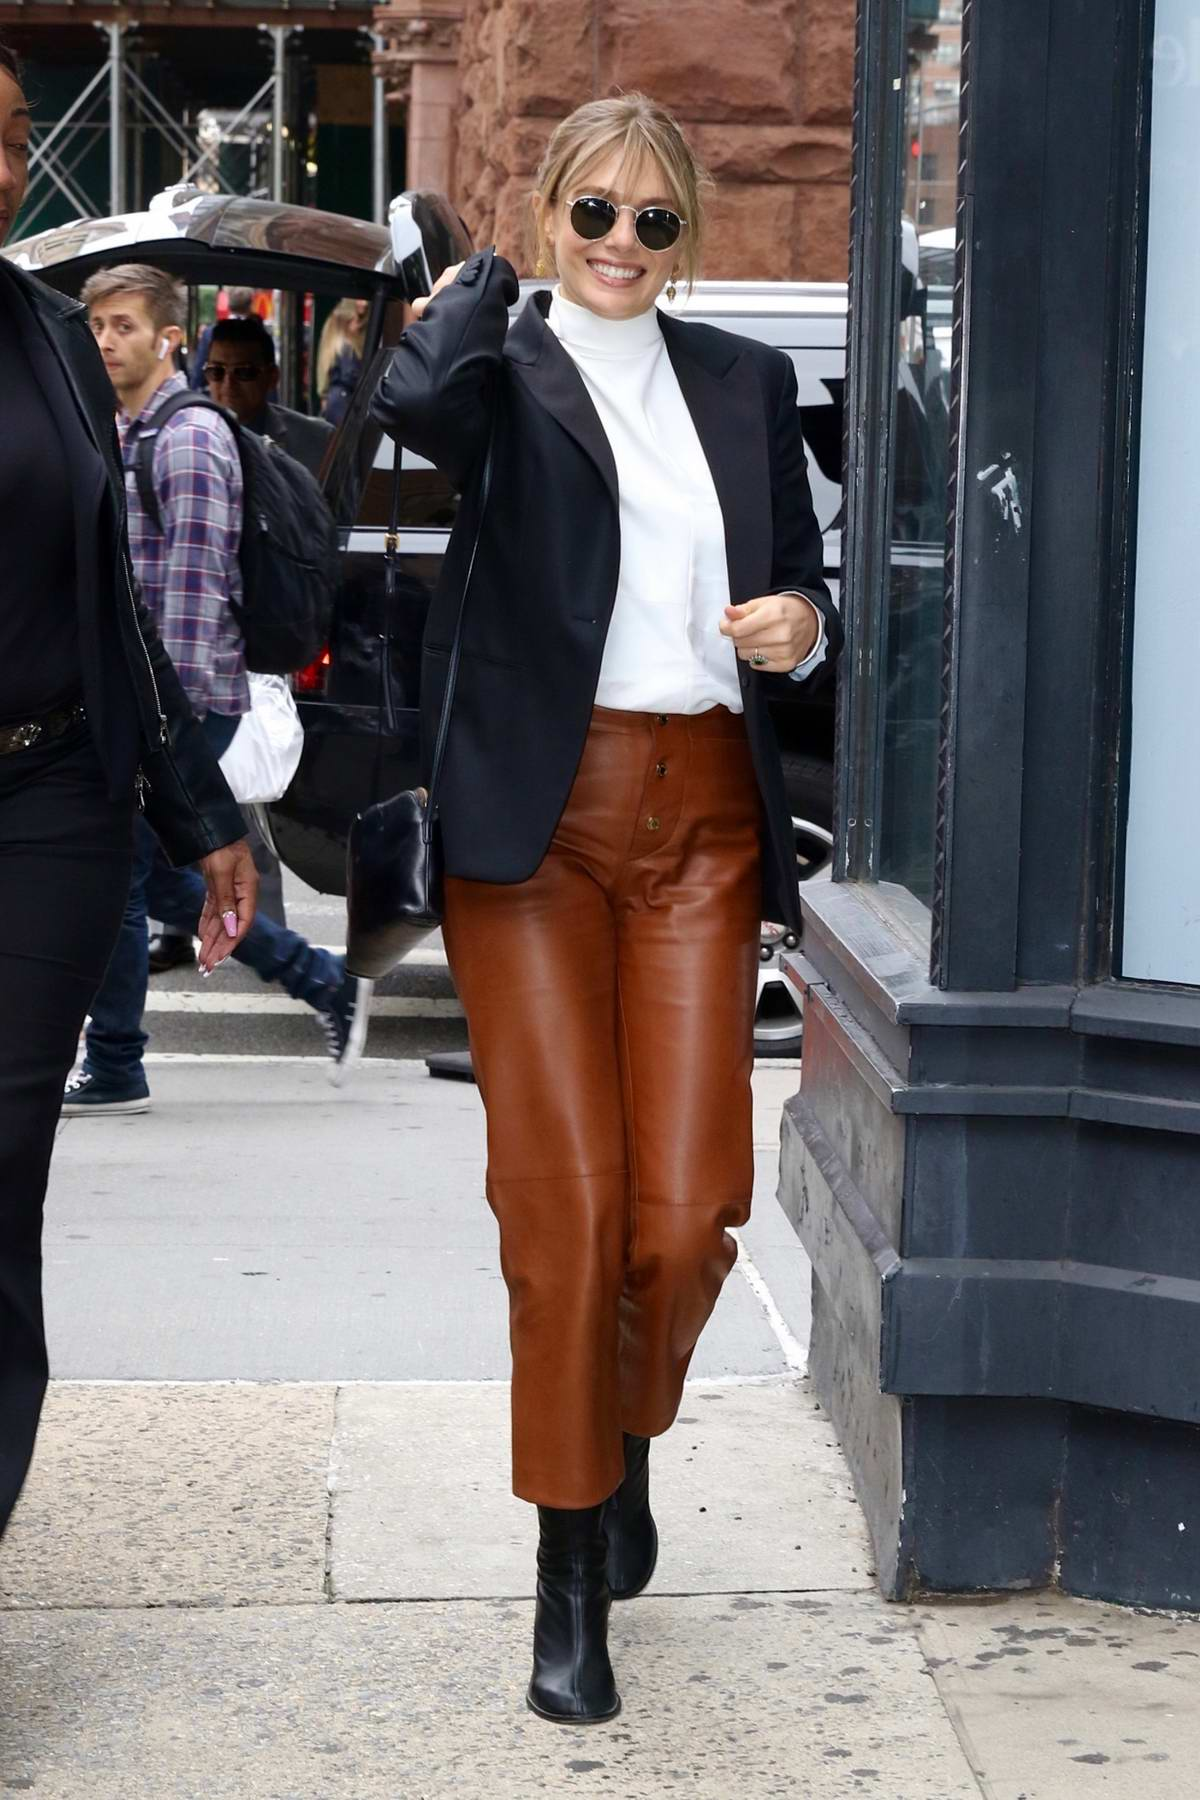 Elizabeth Olsen looks chic in a black blazer and brown leather pants as she arrives at Build Studios in New York City